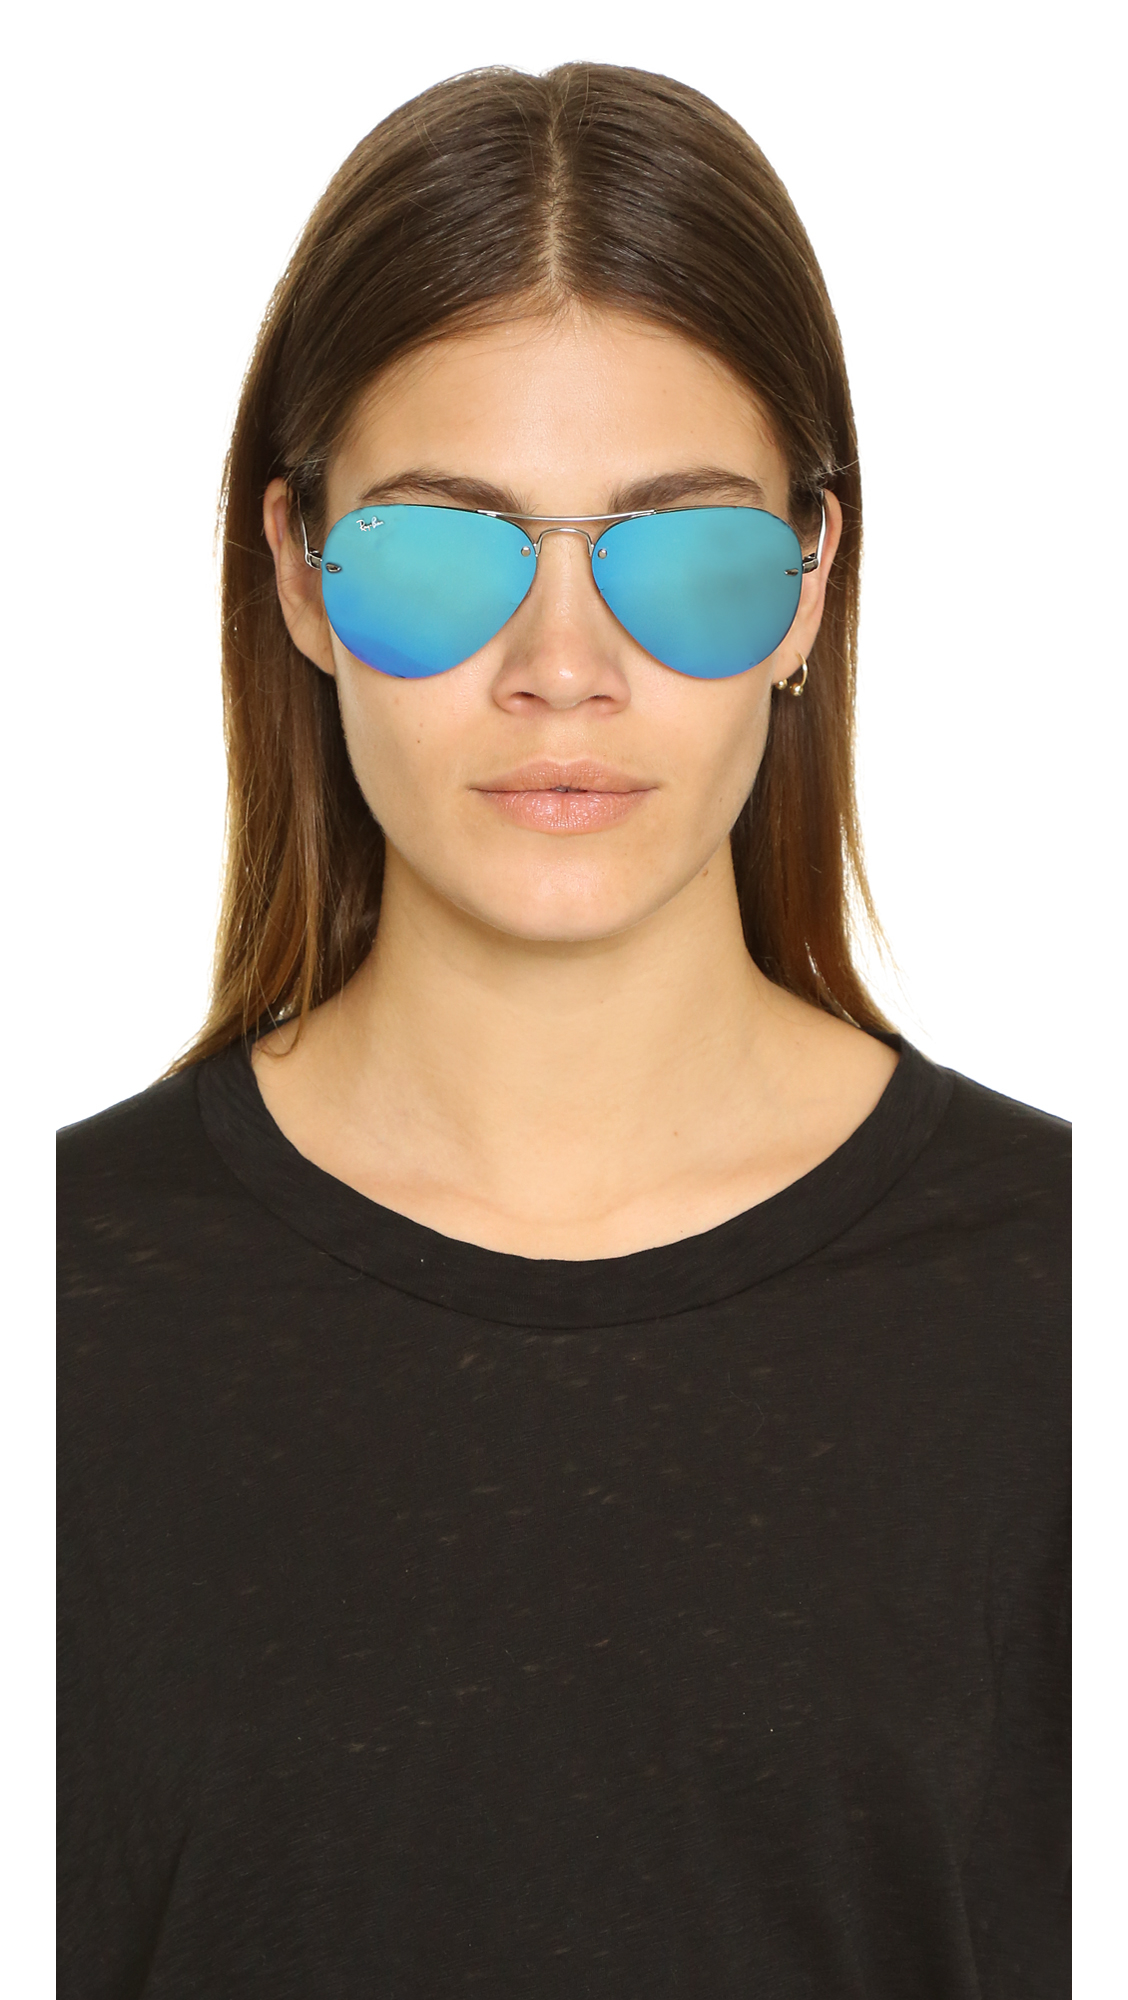 Sunglasses High Street  ray ban highstreet mirrored aviator sunglasses in blue lyst